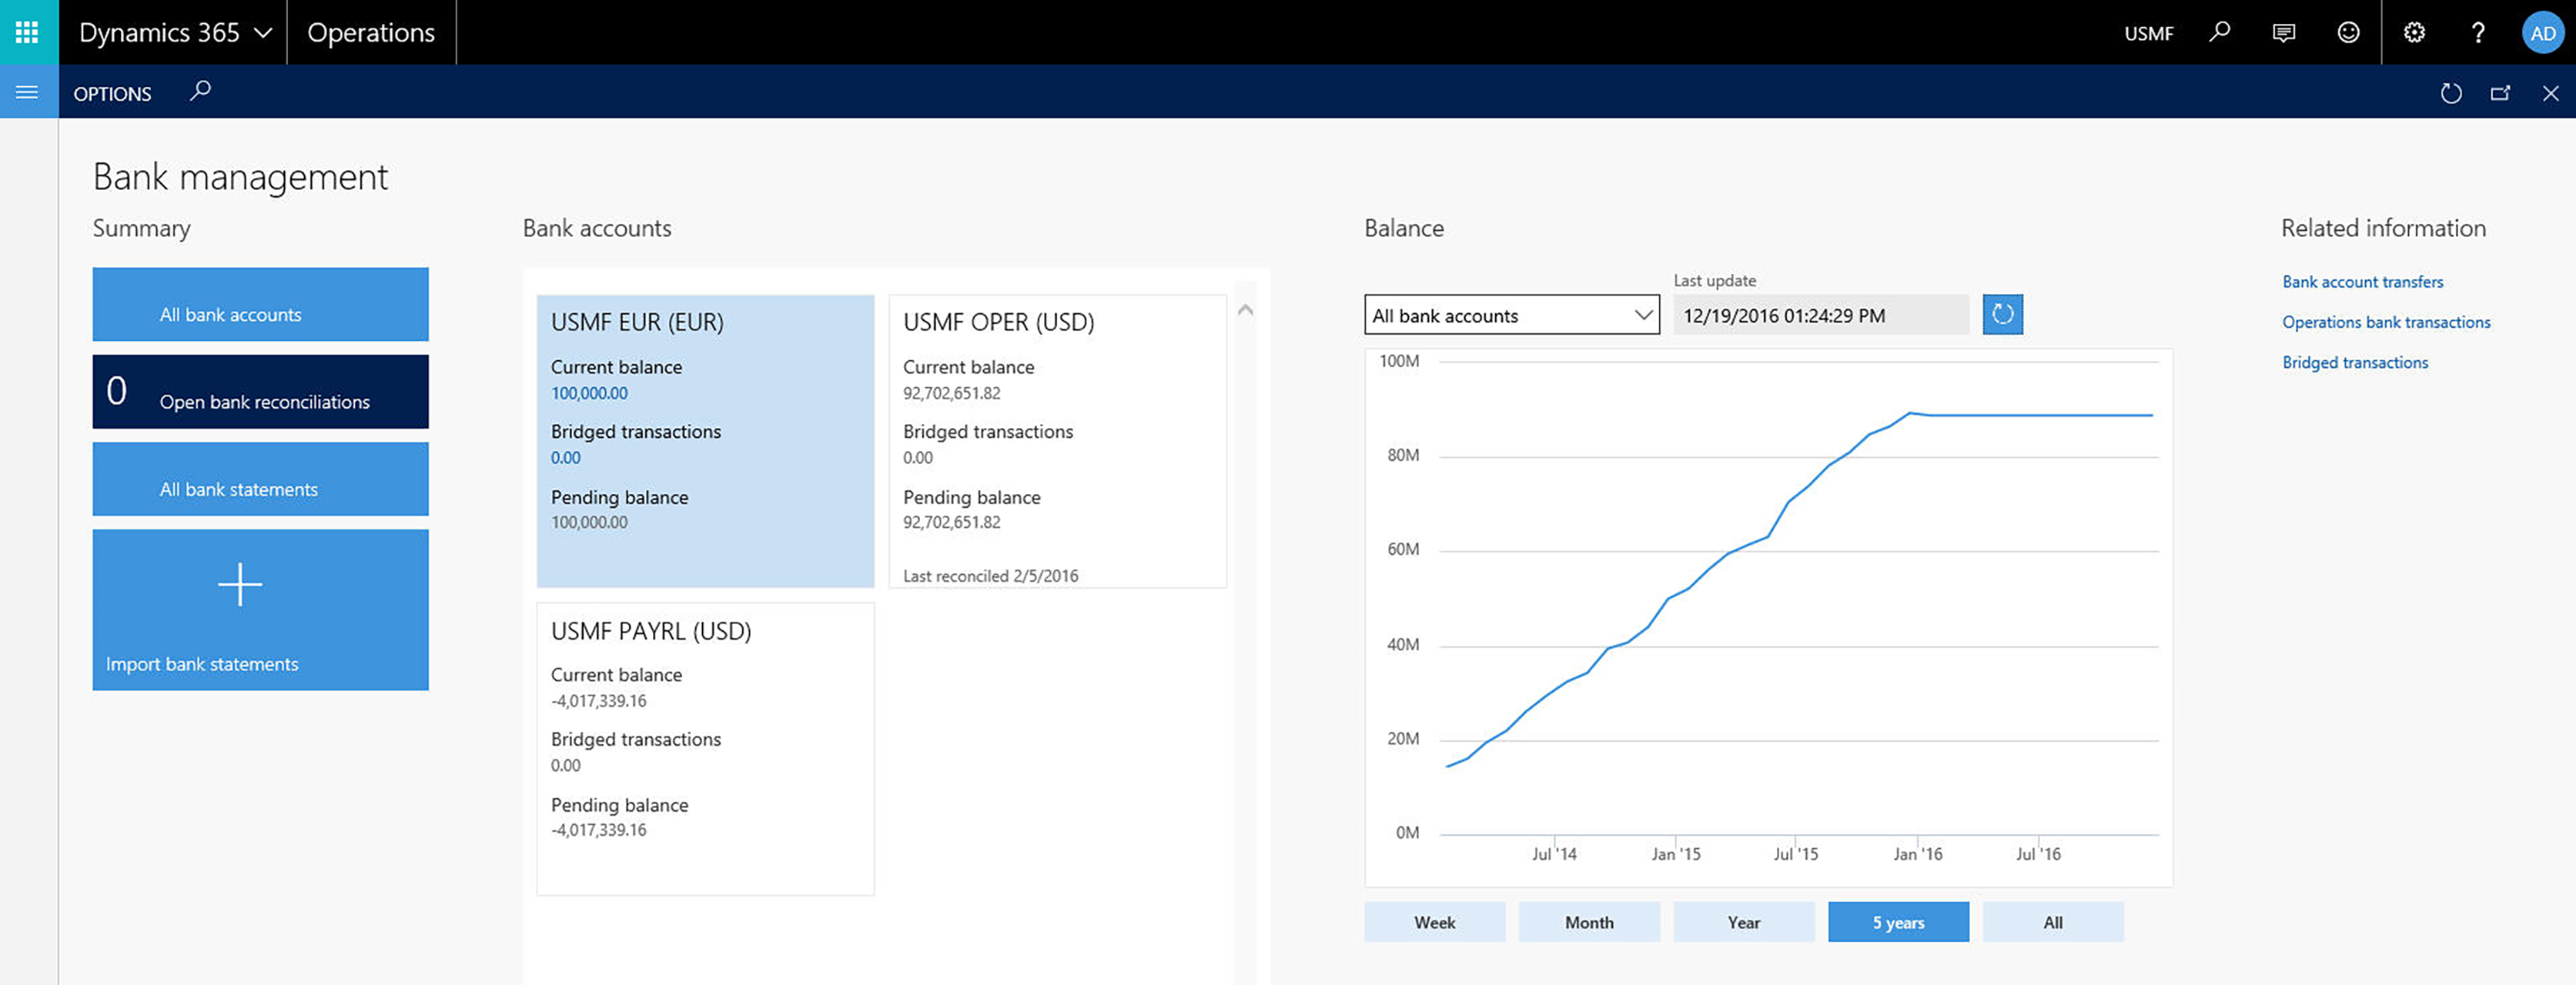 AXIO Core Financials Bank Workspace with Dynamics 365 for Operations